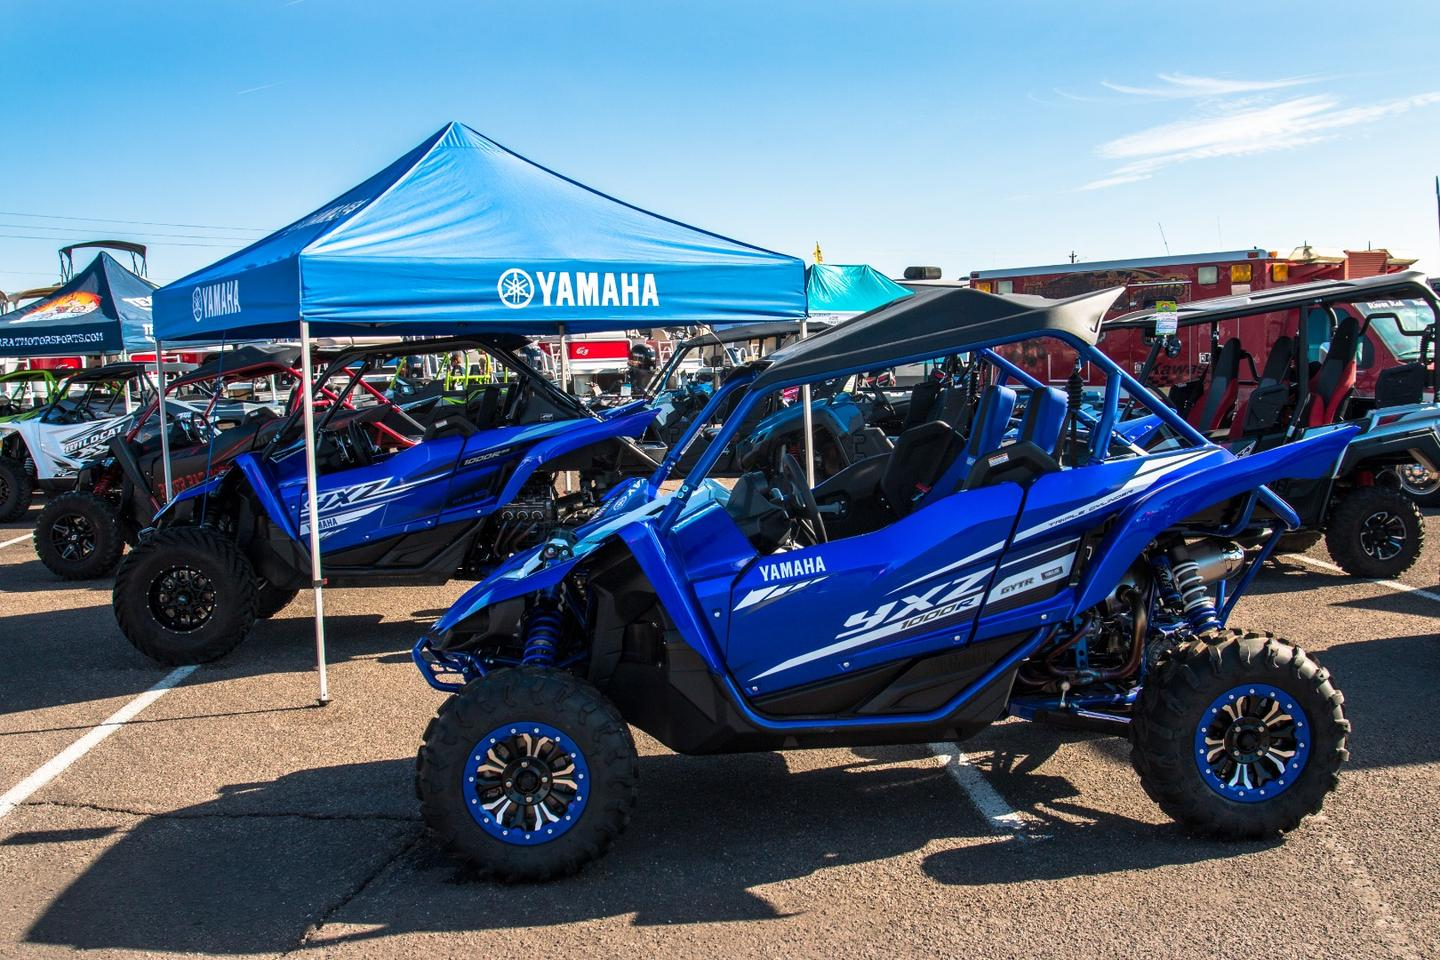 Yamaha's 2019 YXZ 1000Rand YXZ 1000RSS, made for the side-by-side driver who wants a more visceral driving experience. For 2019, Yamaha's lowered the transmissions gear ratio by 24 percent, whilethe new,bigger wheel and tire size results in thefinal drive gear ratio beinglowered by 16 percent, making slower speeds and more technical trails easier